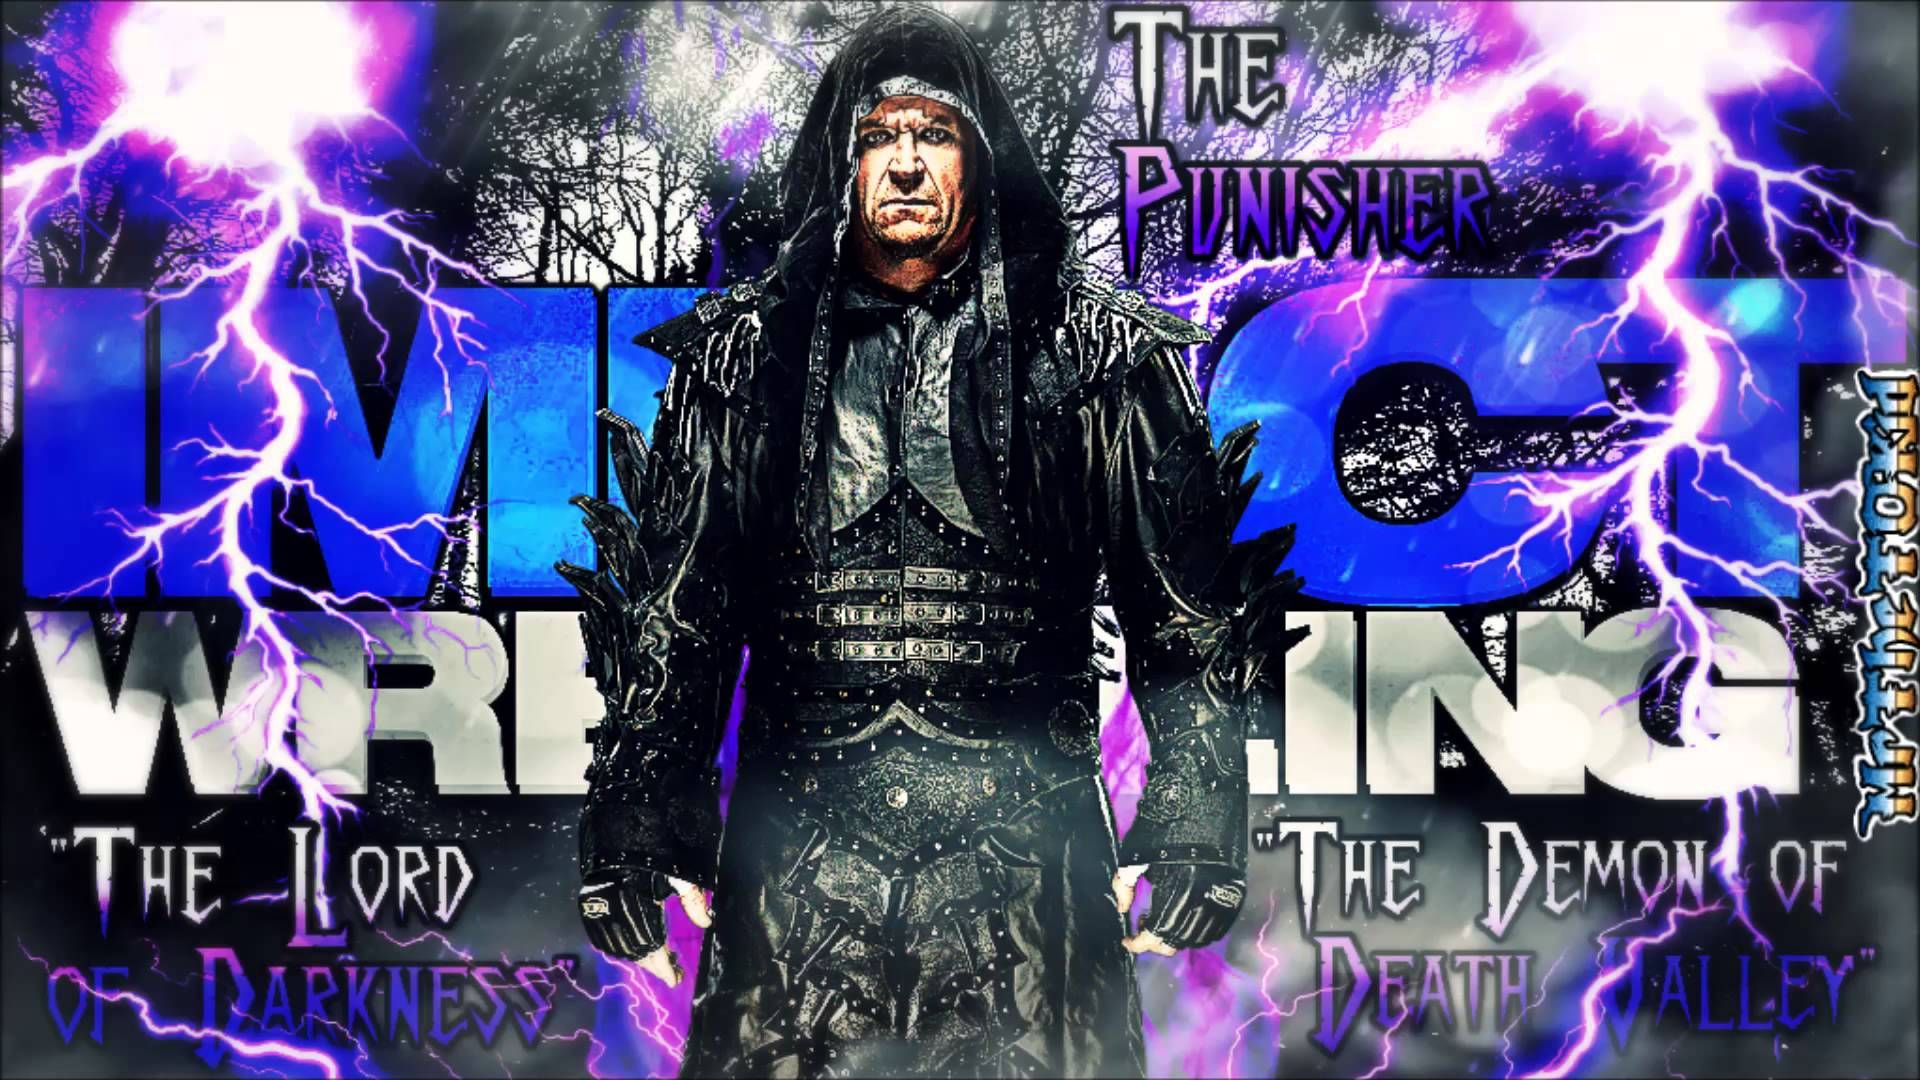 Wwe The Undertaker 1990s (new) 2014: the undertaker 2nd